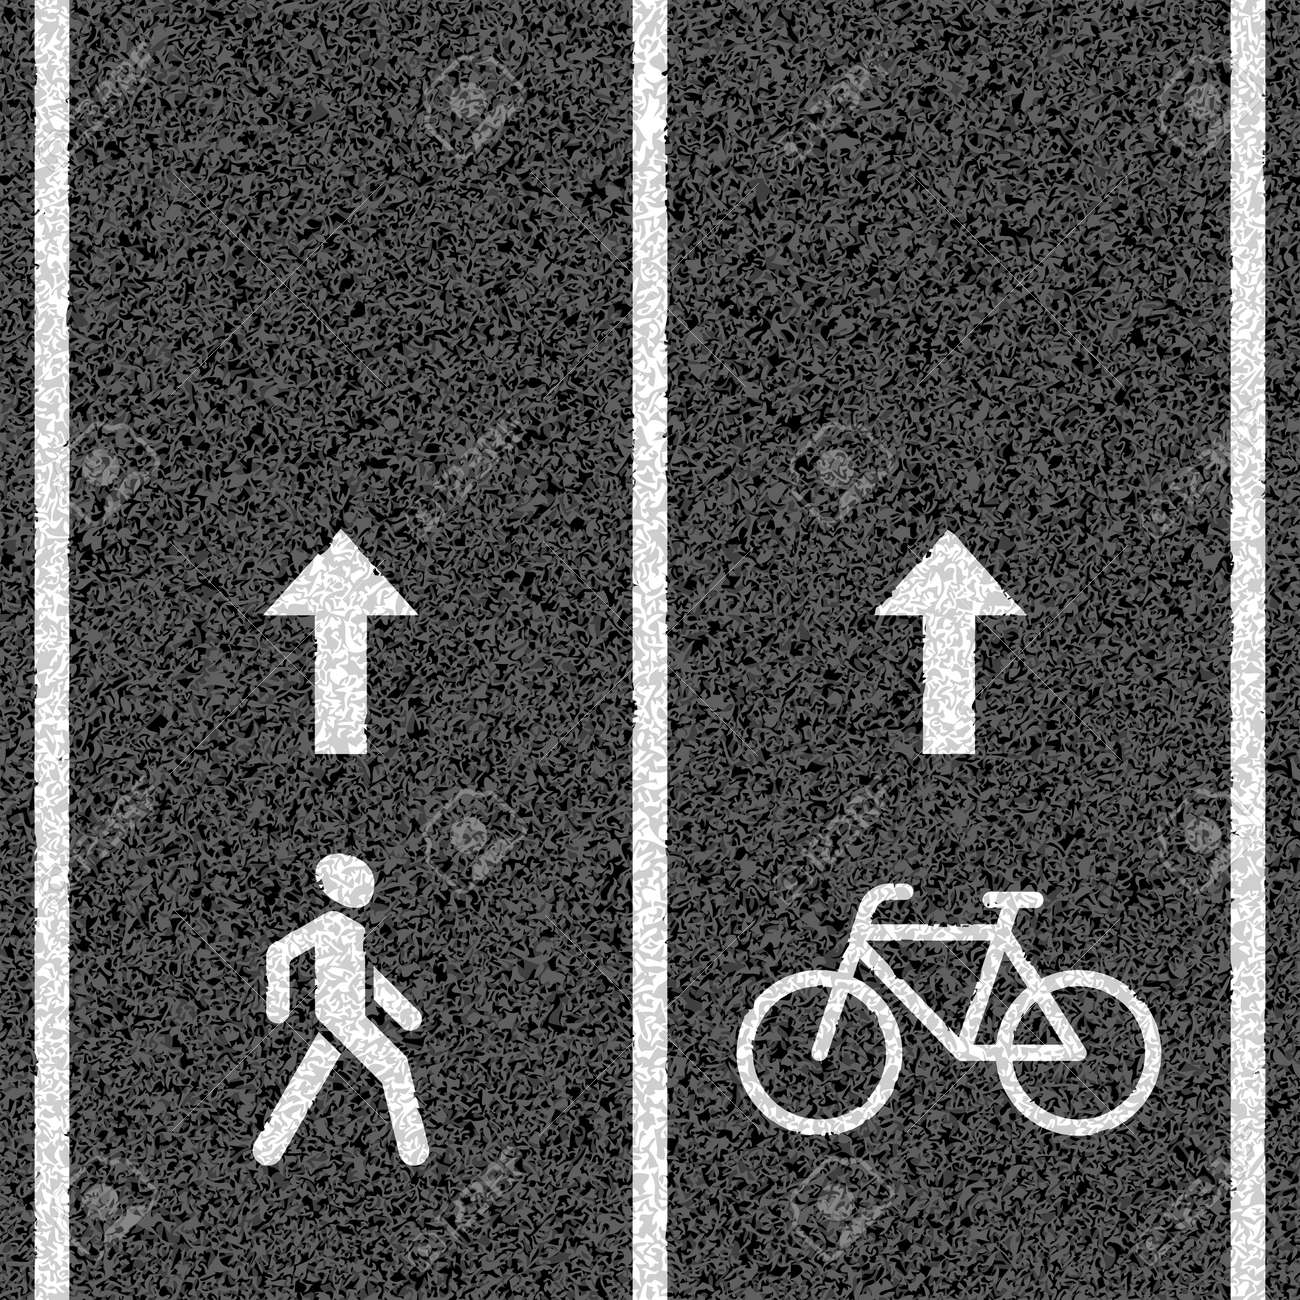 Bicycle and pedestrian paths - 21620823